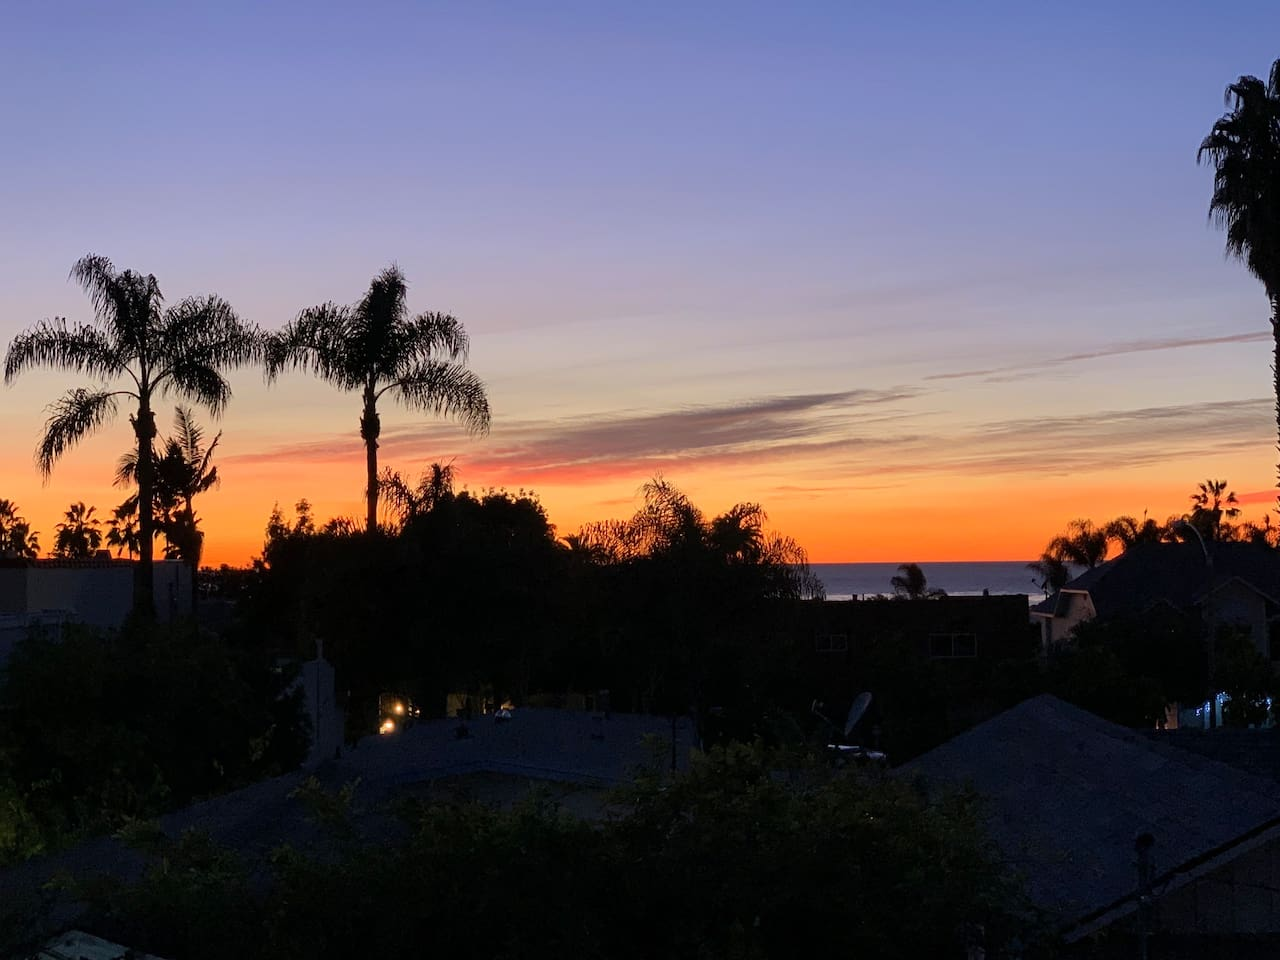 Another beautiful view of the sunset and ocean from your private deck!